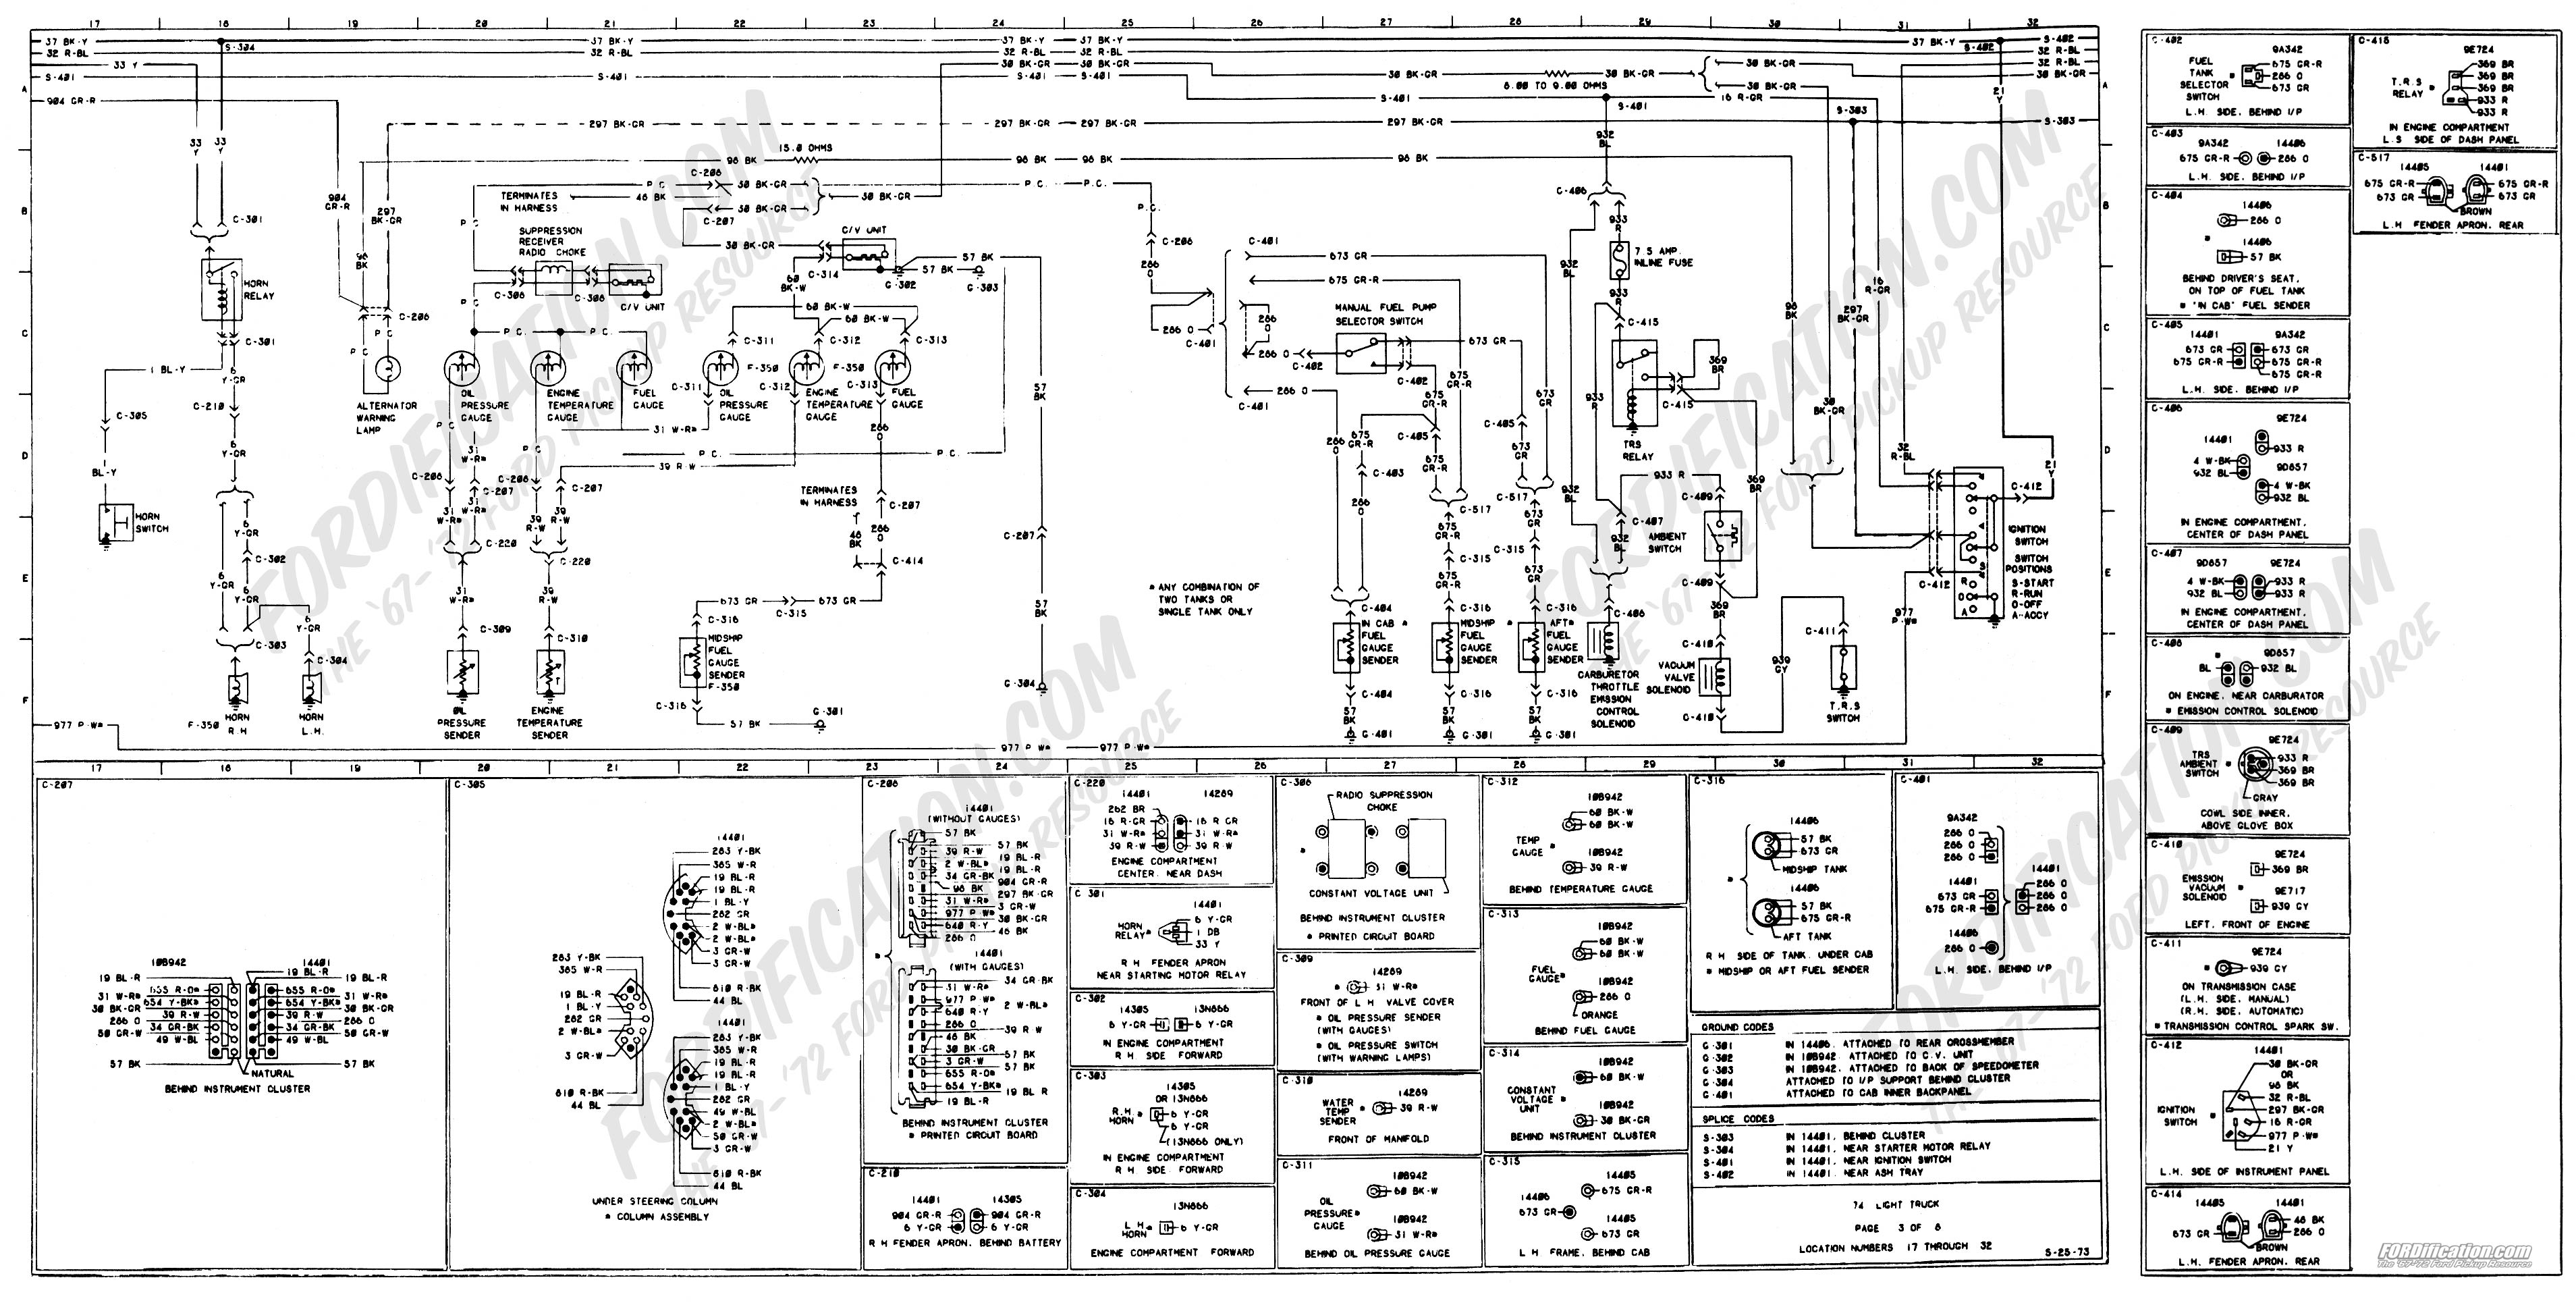 [SCHEMATICS_4PO]  C8F494 Fuse Box For 1990 Ford L9000 | Wiring Resources | Fender Schematics Wiring Diagramscharvel Benedetto |  | Wiring Resources